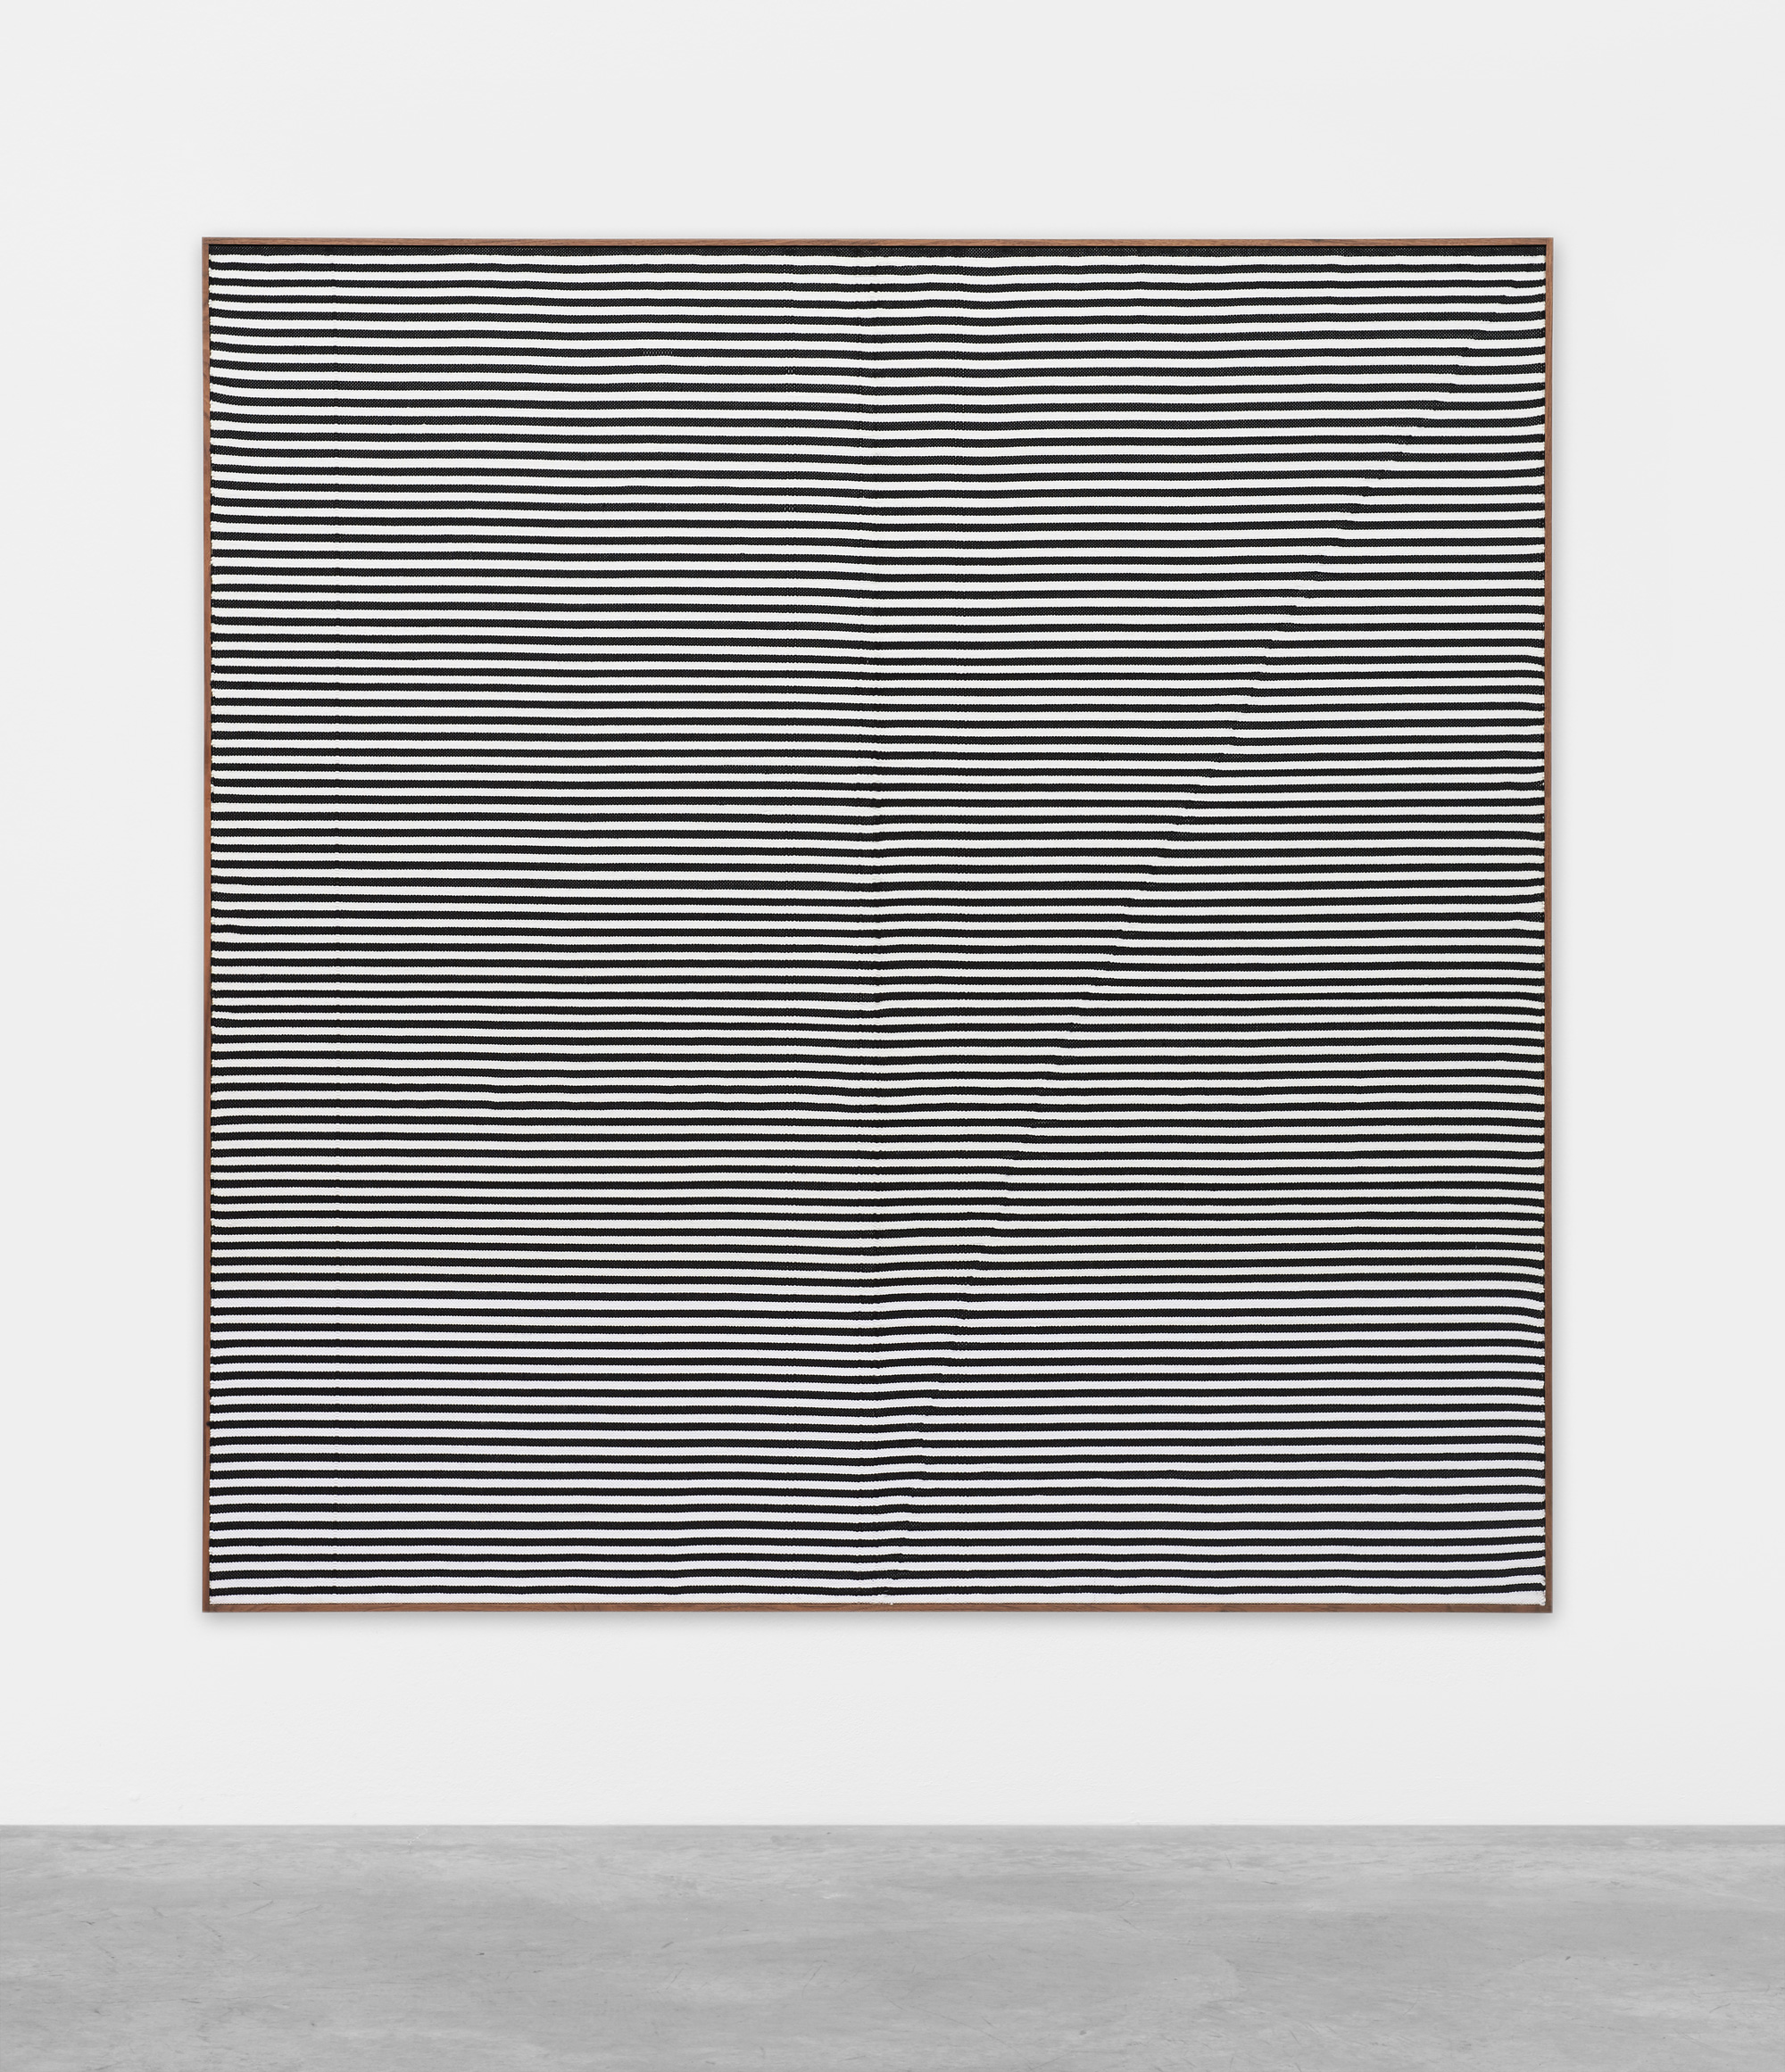 SUTURES Untitled 2017 Hand woven fibers, wool, cotton and acrylic on canvas 72 3/8 by 74 1/4 in.  183.8 by 188.6 cm © Brent Wadden; Courtesy of the artist and Mitchell-Innes & Nash, New York 2018 Marc Straus Gallery